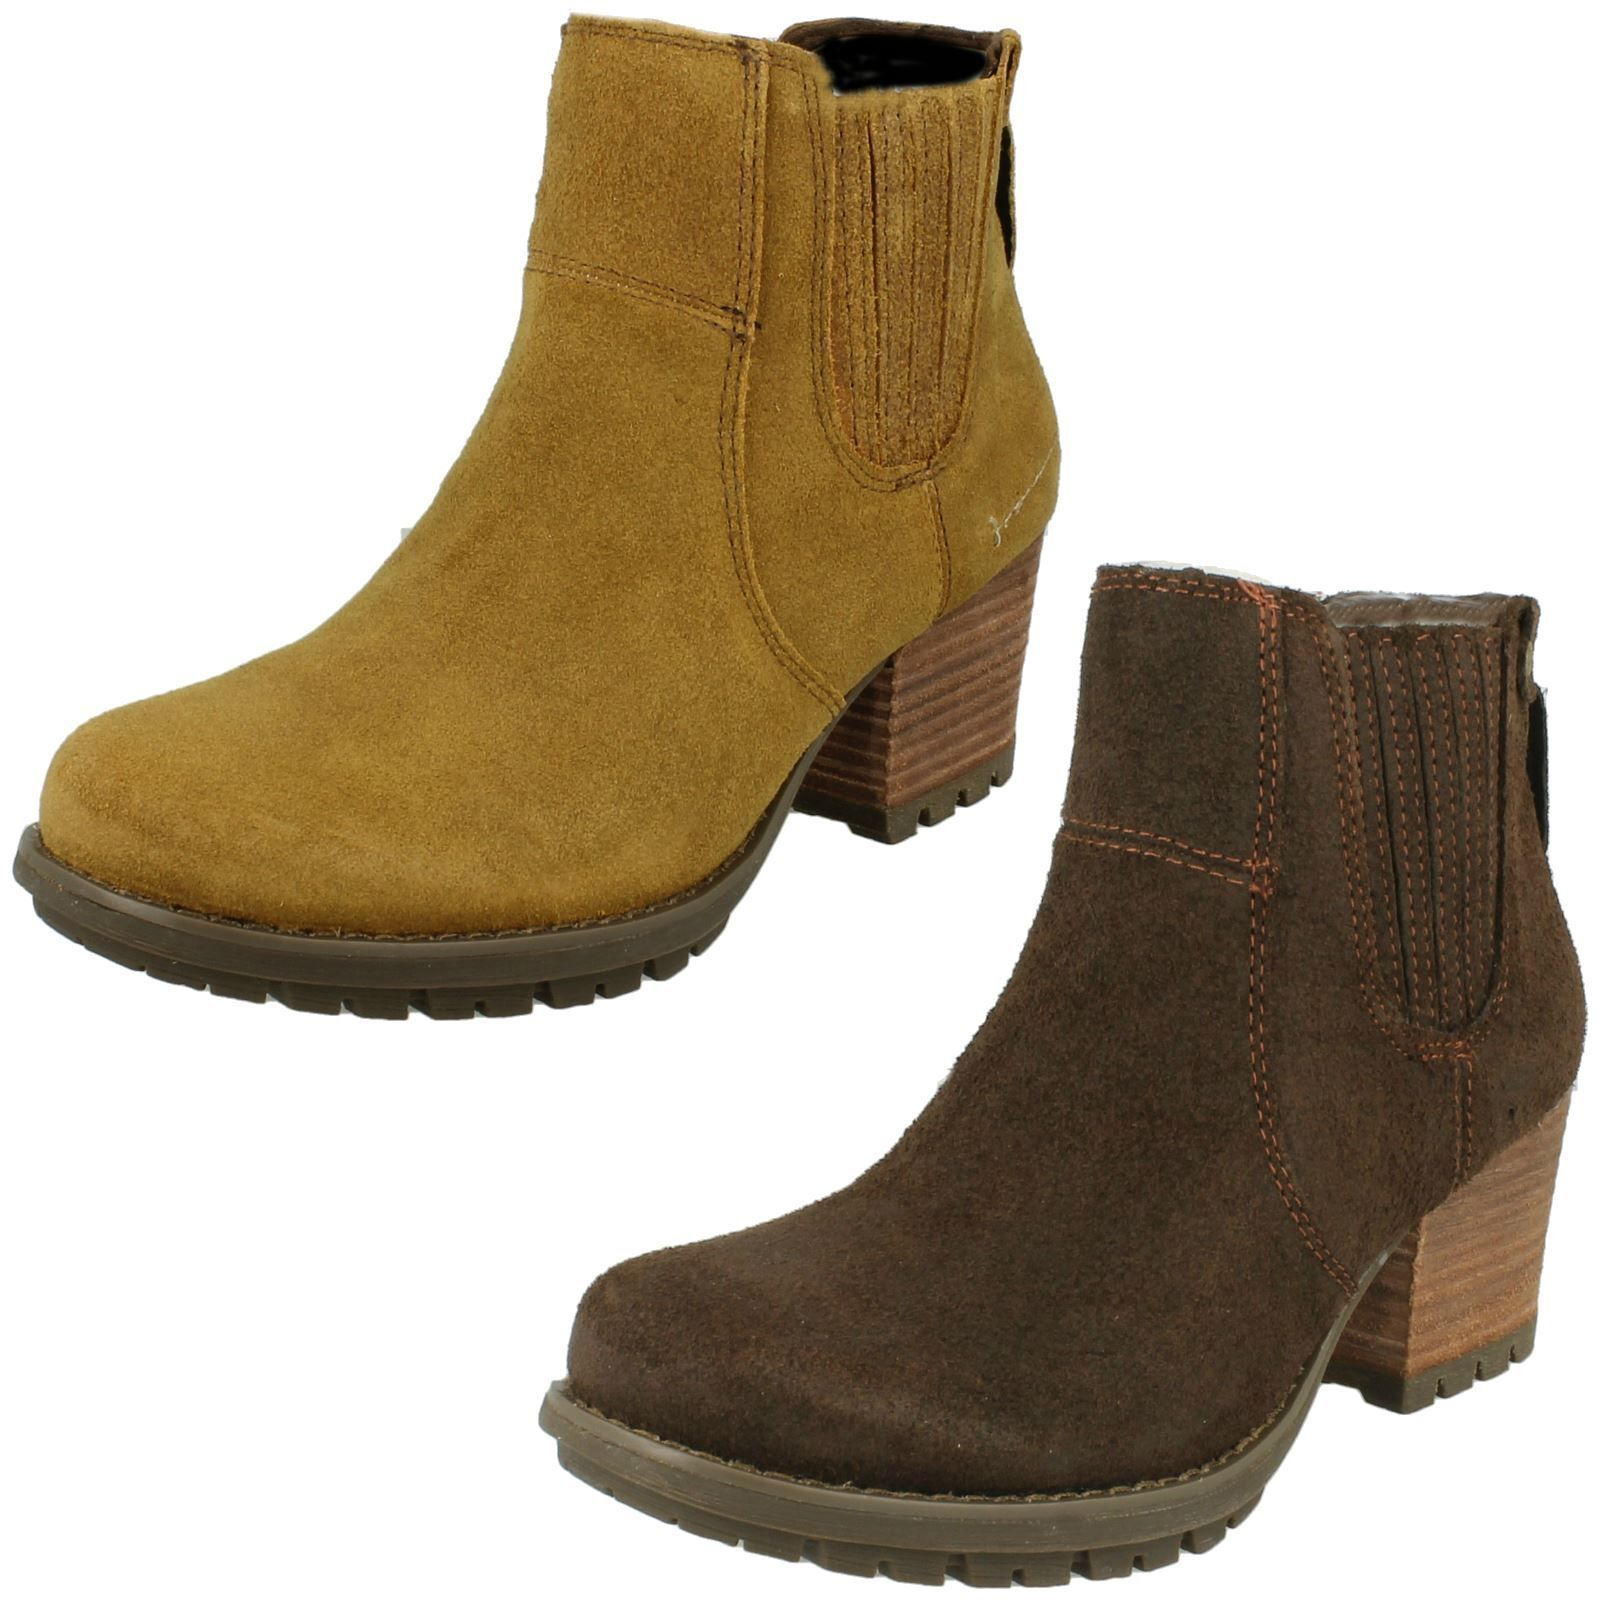 P306313 Ladies Allison Suede Ankle Boots- 2 Colours- Wide Width- Great Price!